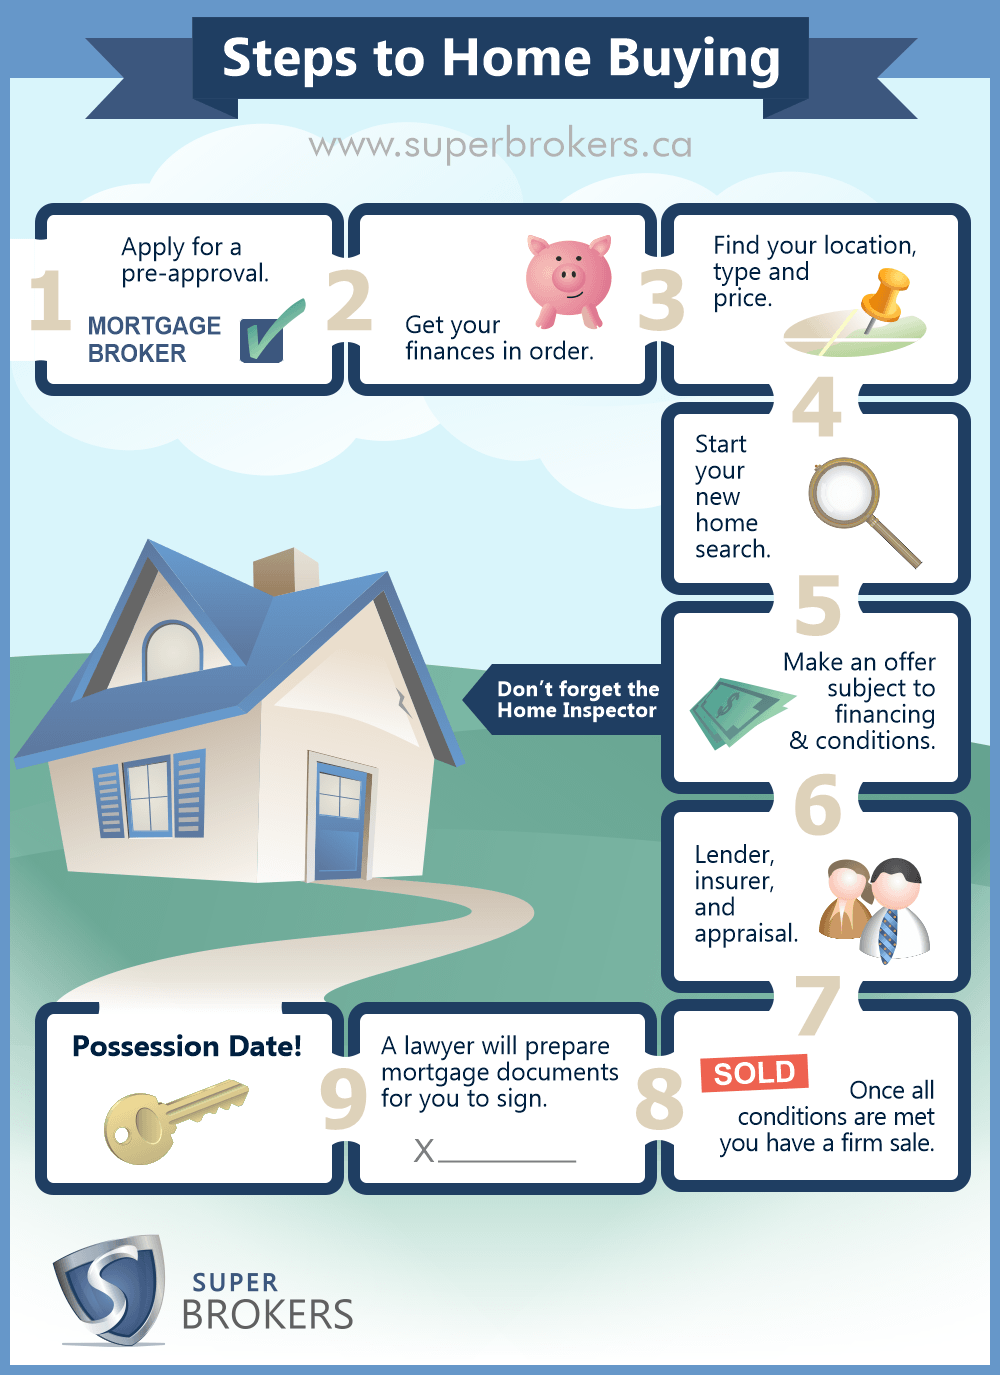 Steps to home buying infographic